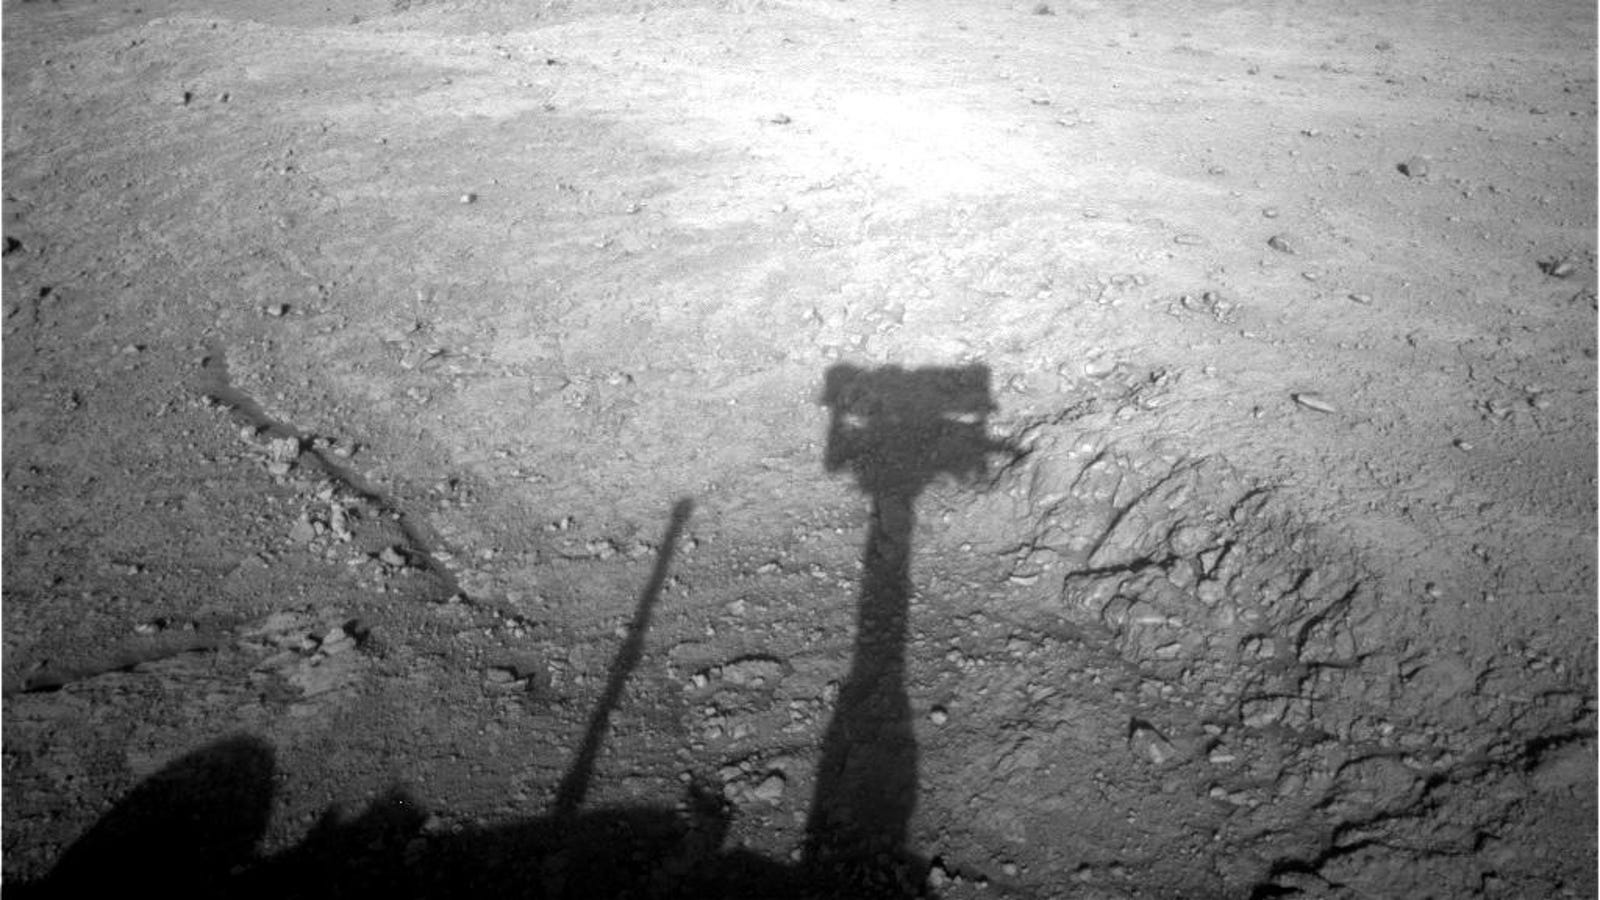 The Sheer Distance Opportunity Roved Across Mars Still Has Us in Awe